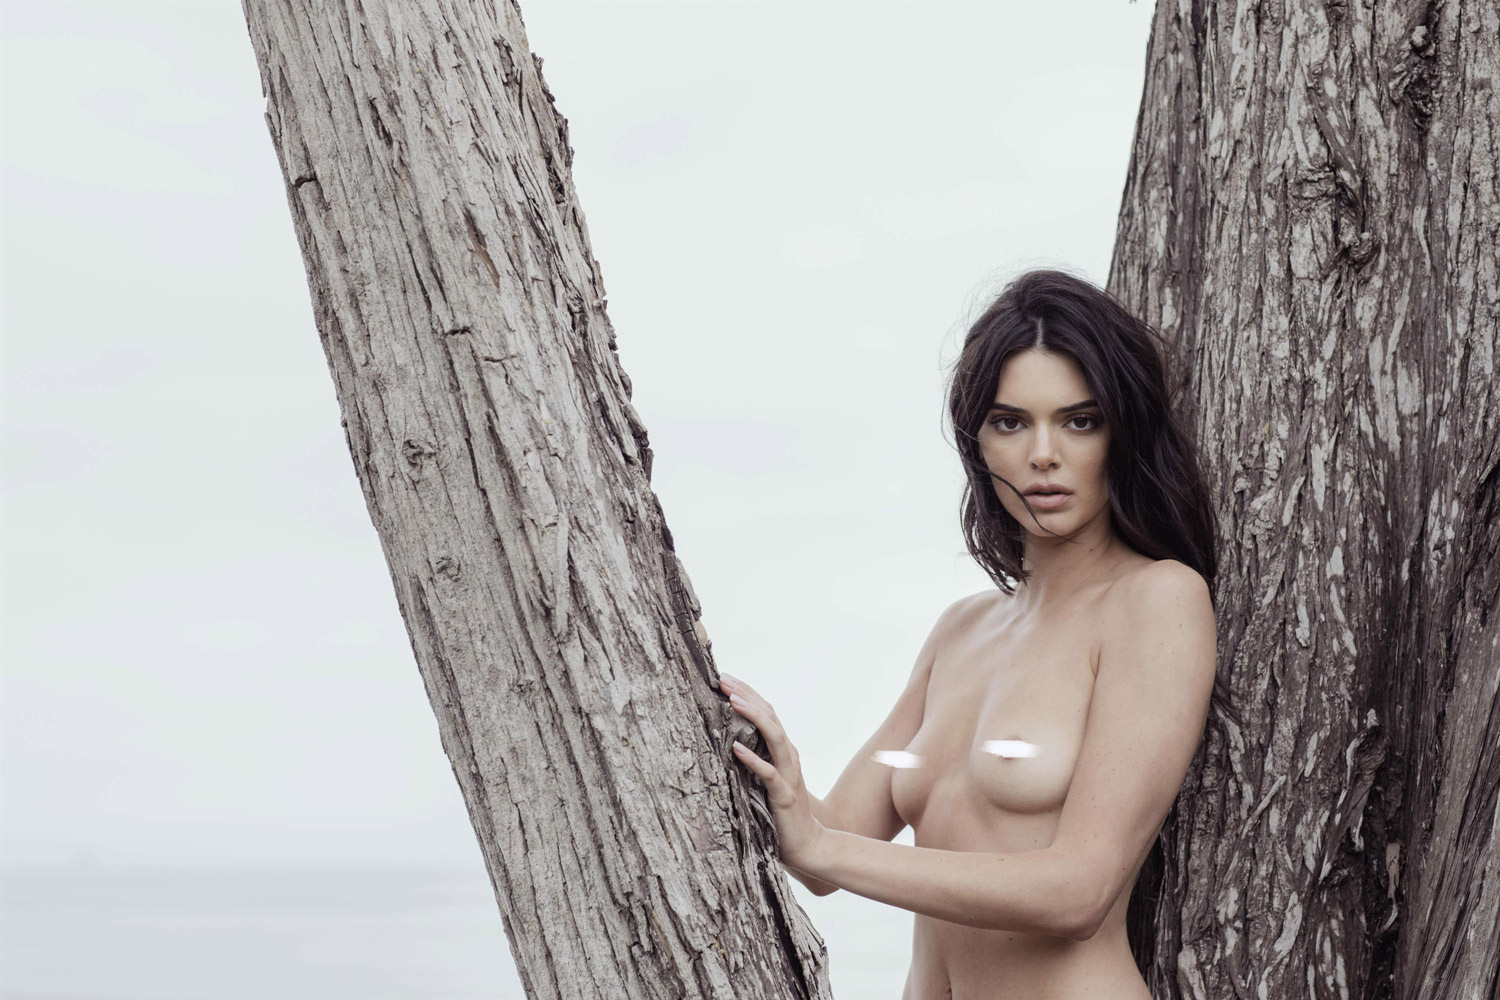 Kendall Jenner nude beach